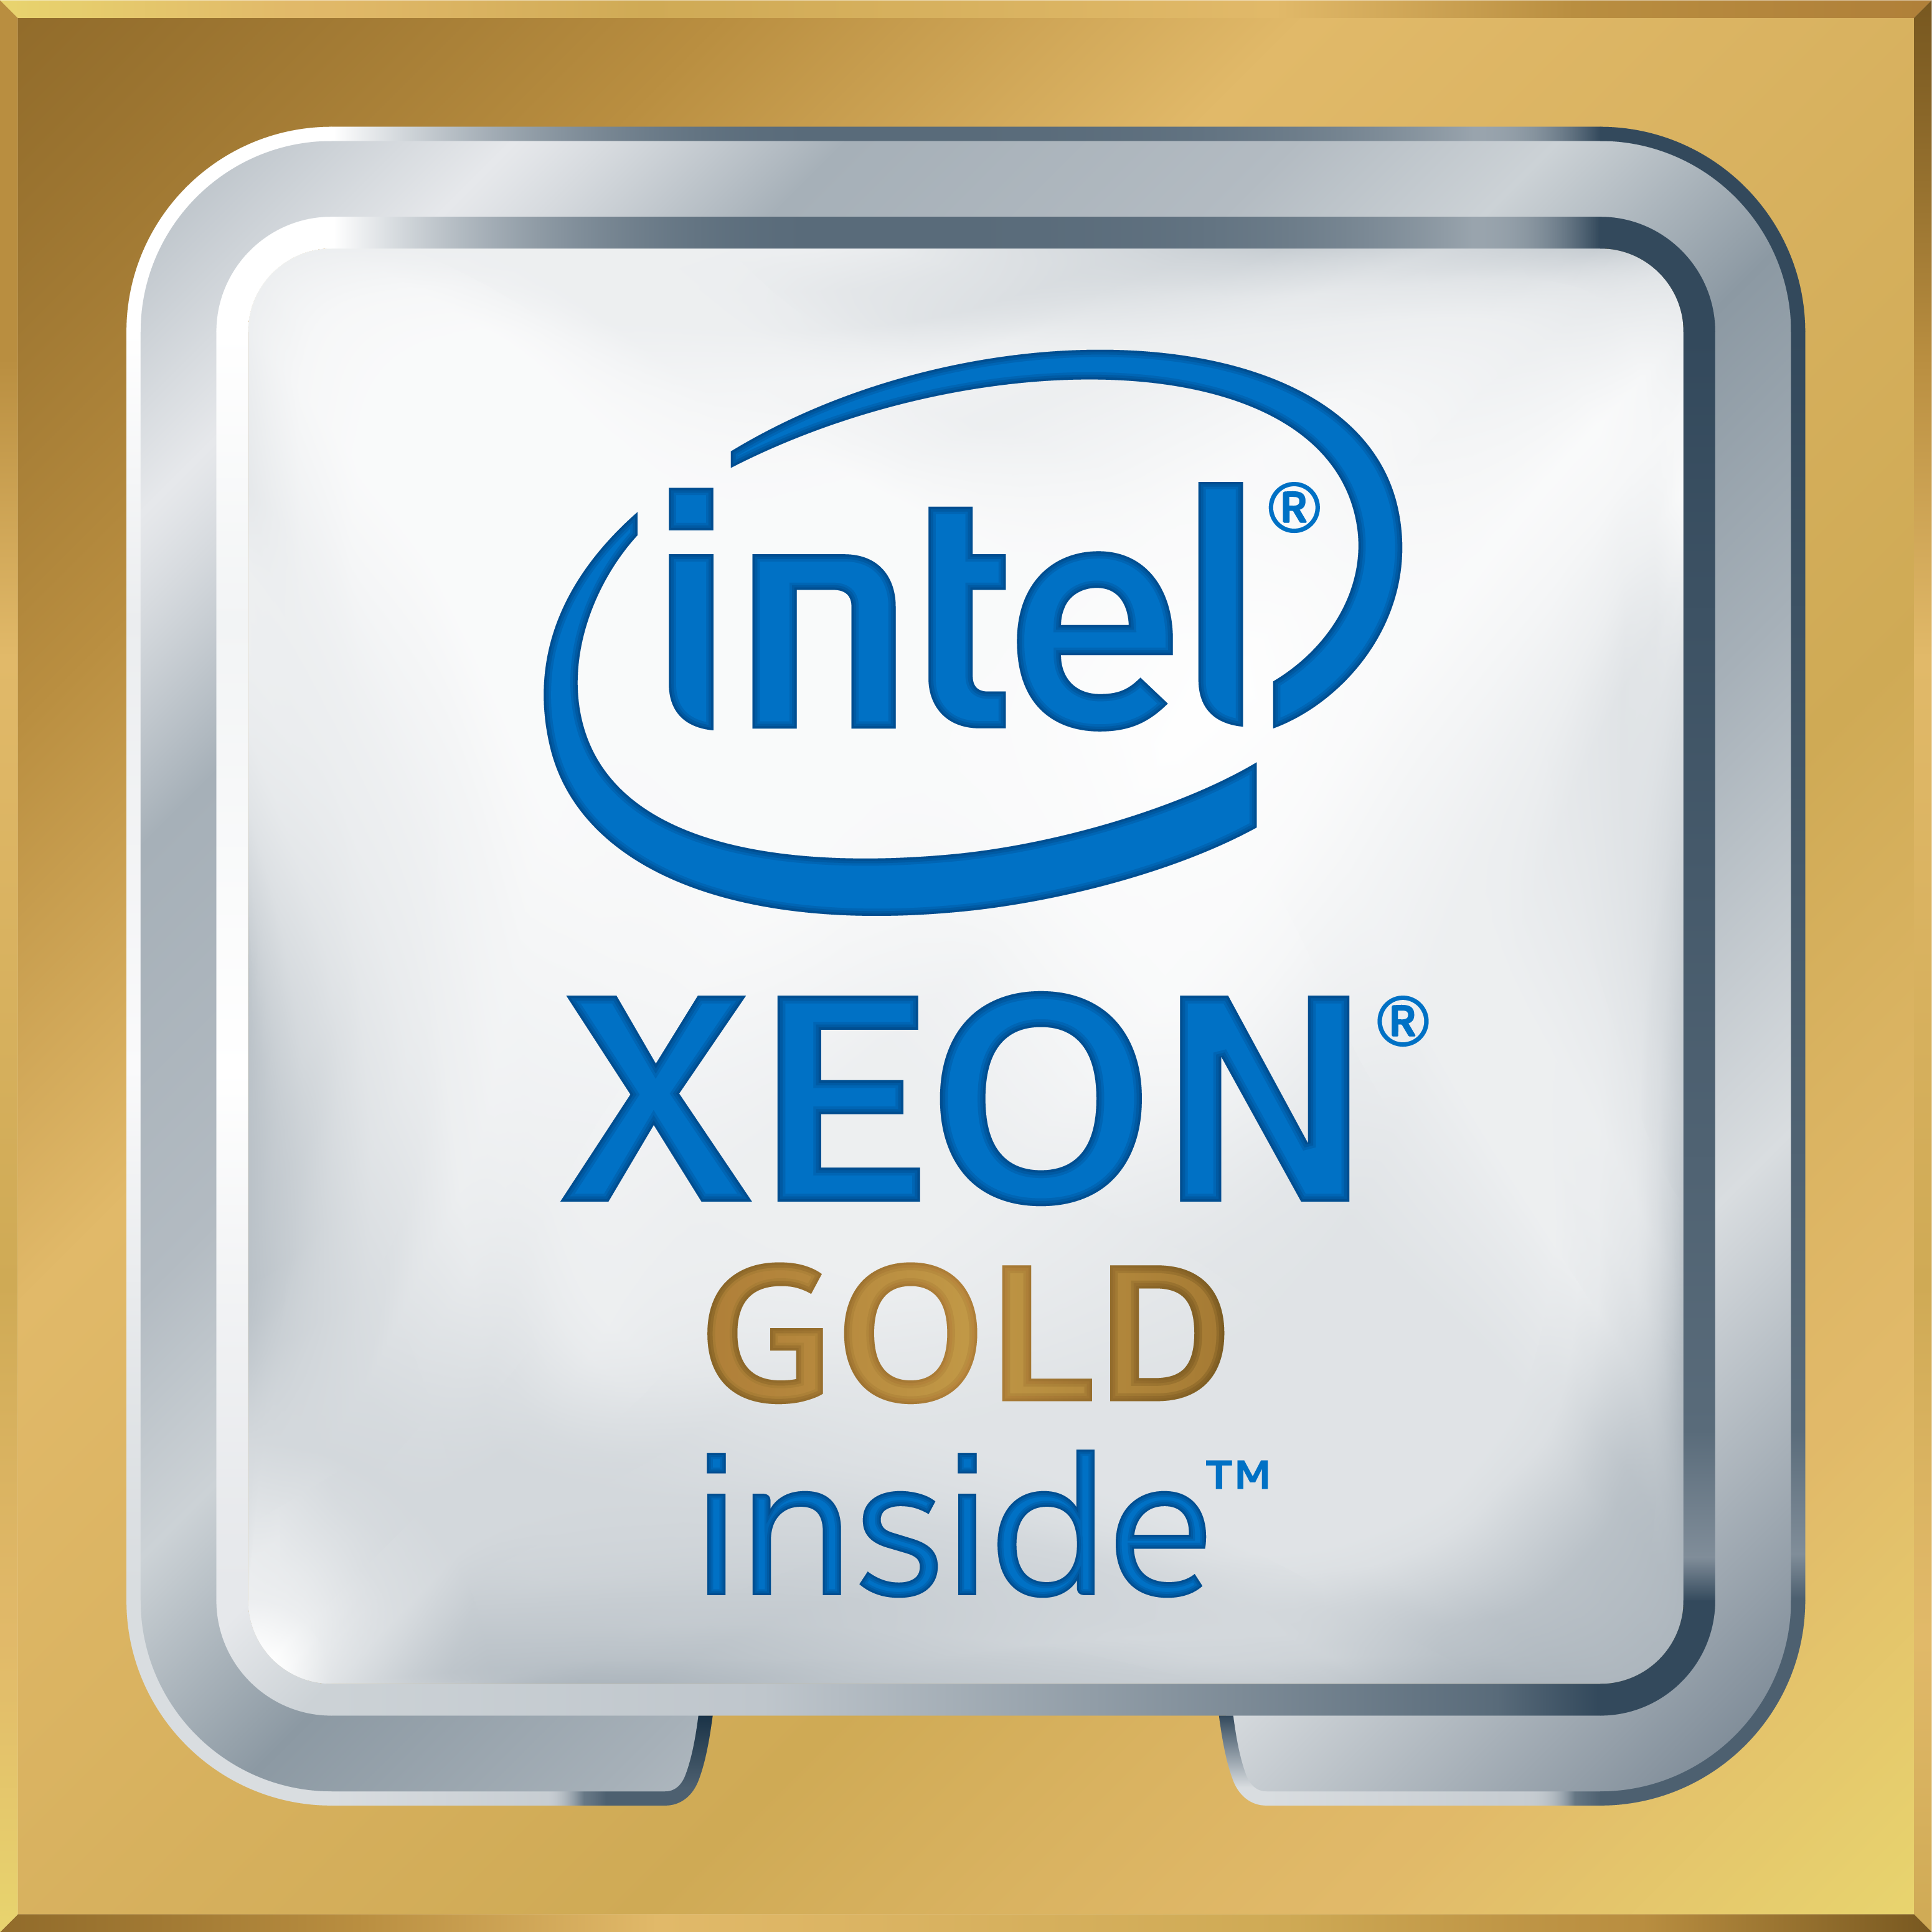 Intel Xeon Gold Logo High Res Transparent 2017